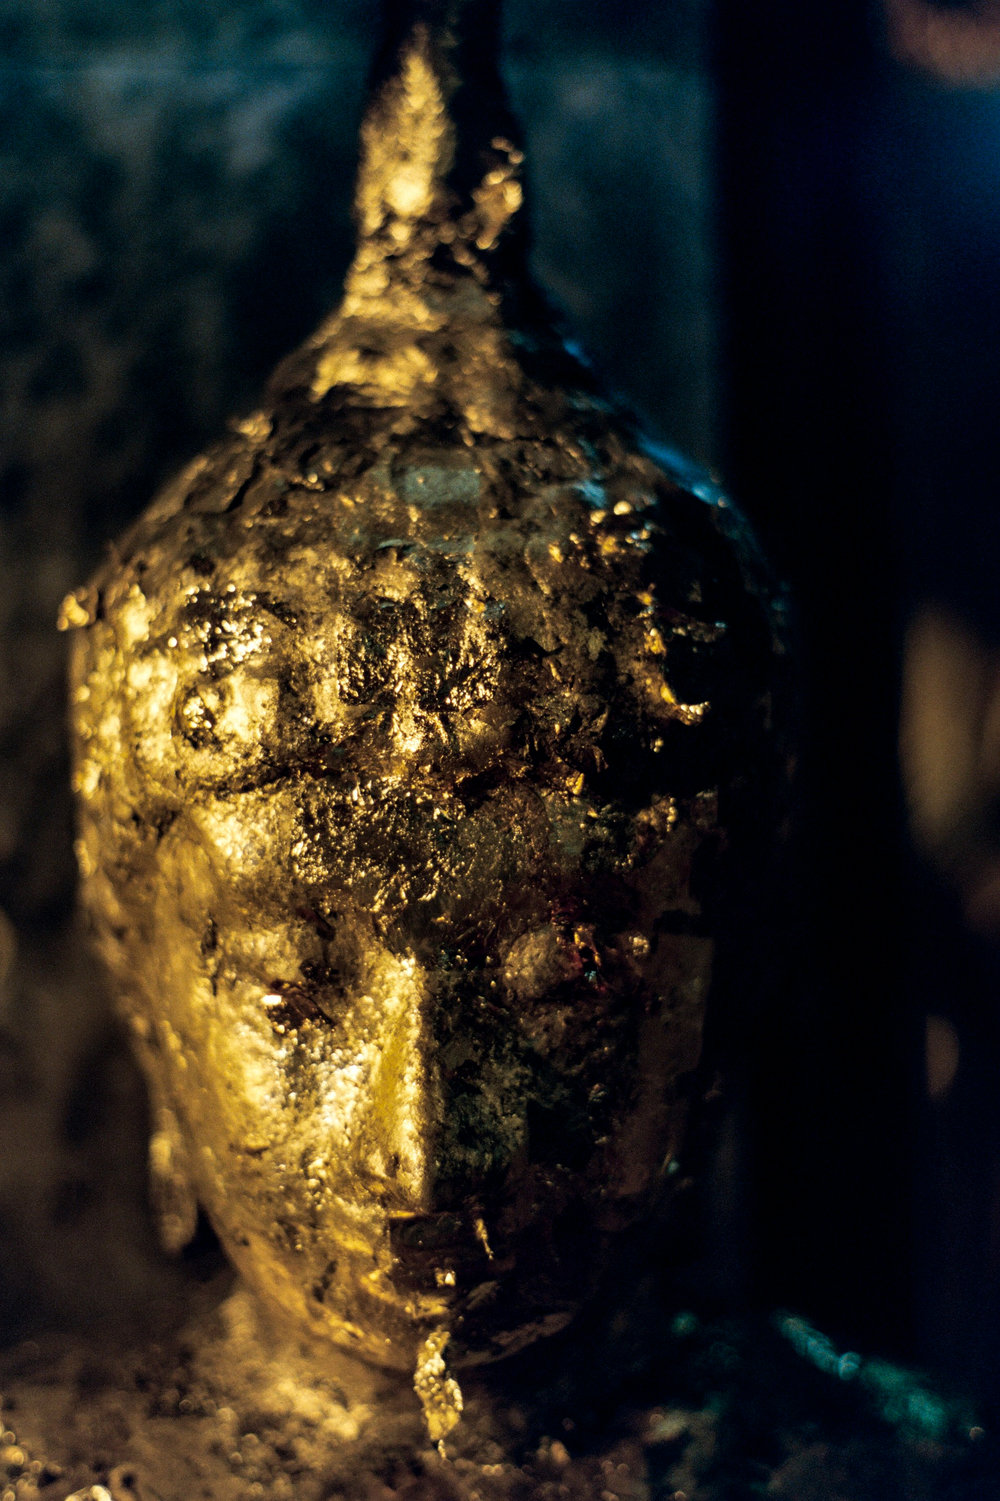 A Buddha statue covered in flaky gold leaf. Visitors press gold leaf into the Buddha's face, resulting in this buildup.